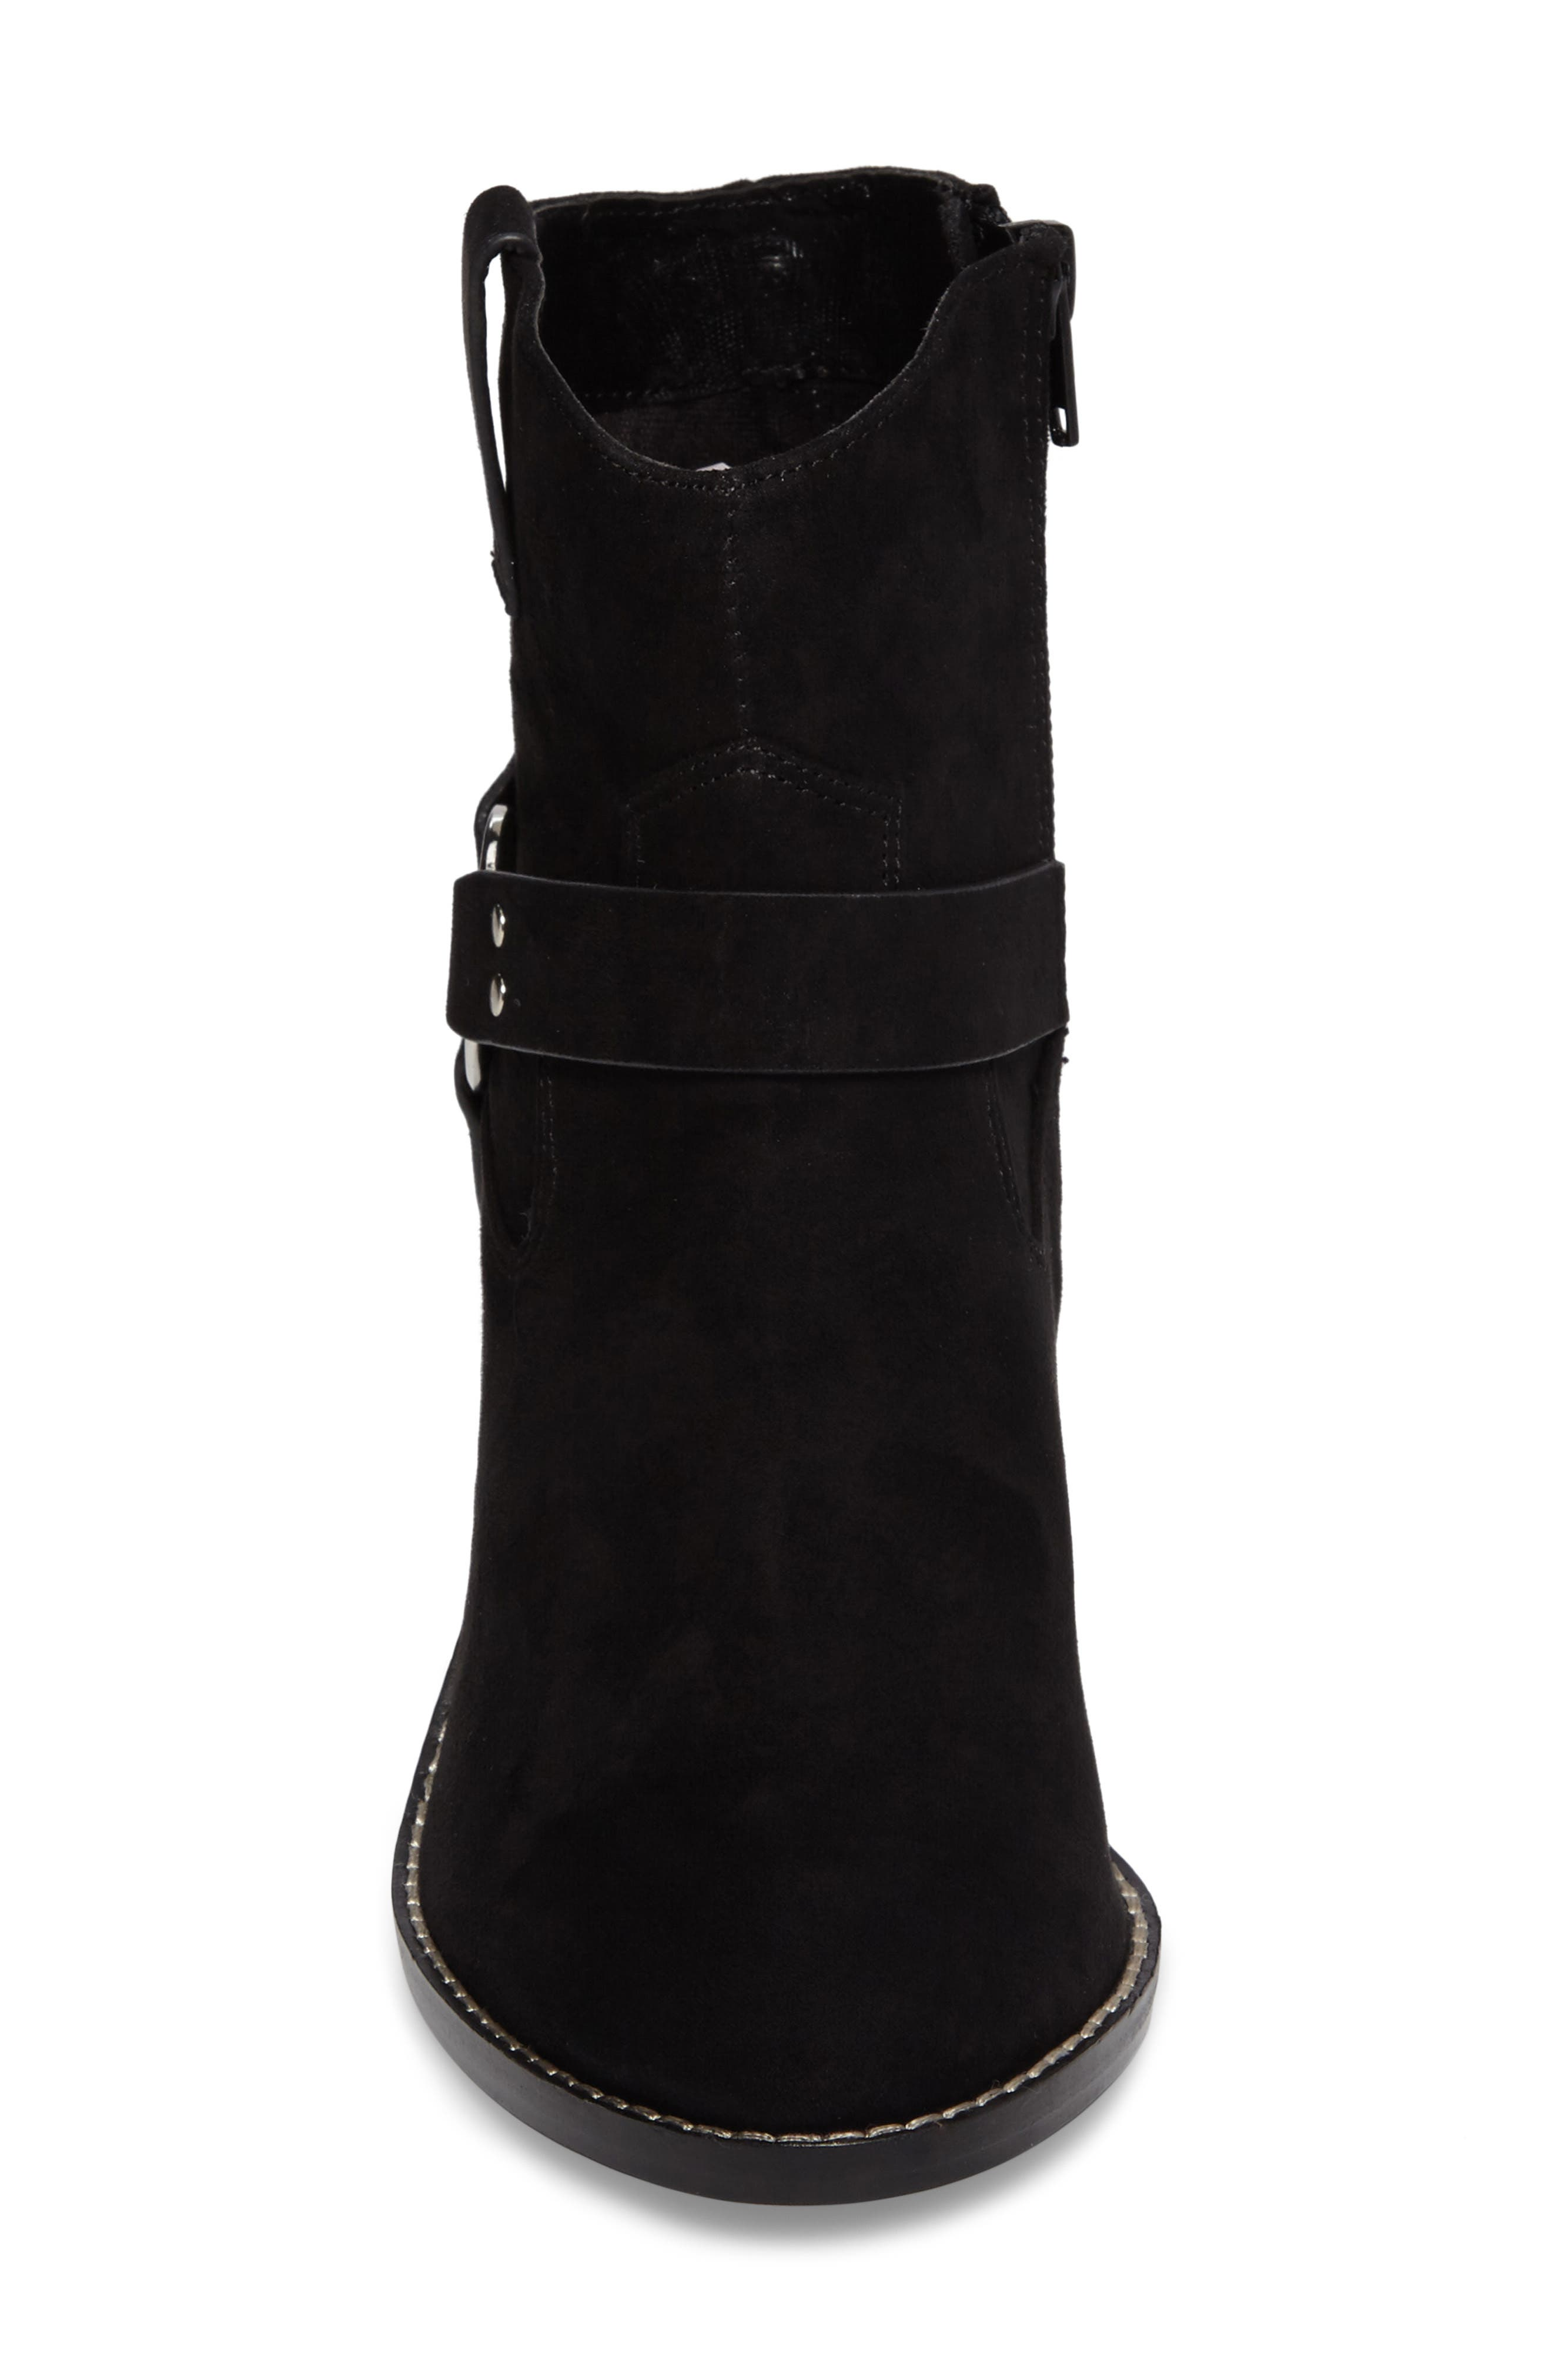 Fancye Ringed Ankle Strap Bootie,                             Alternate thumbnail 4, color,                             BLACK SYNTHETIC